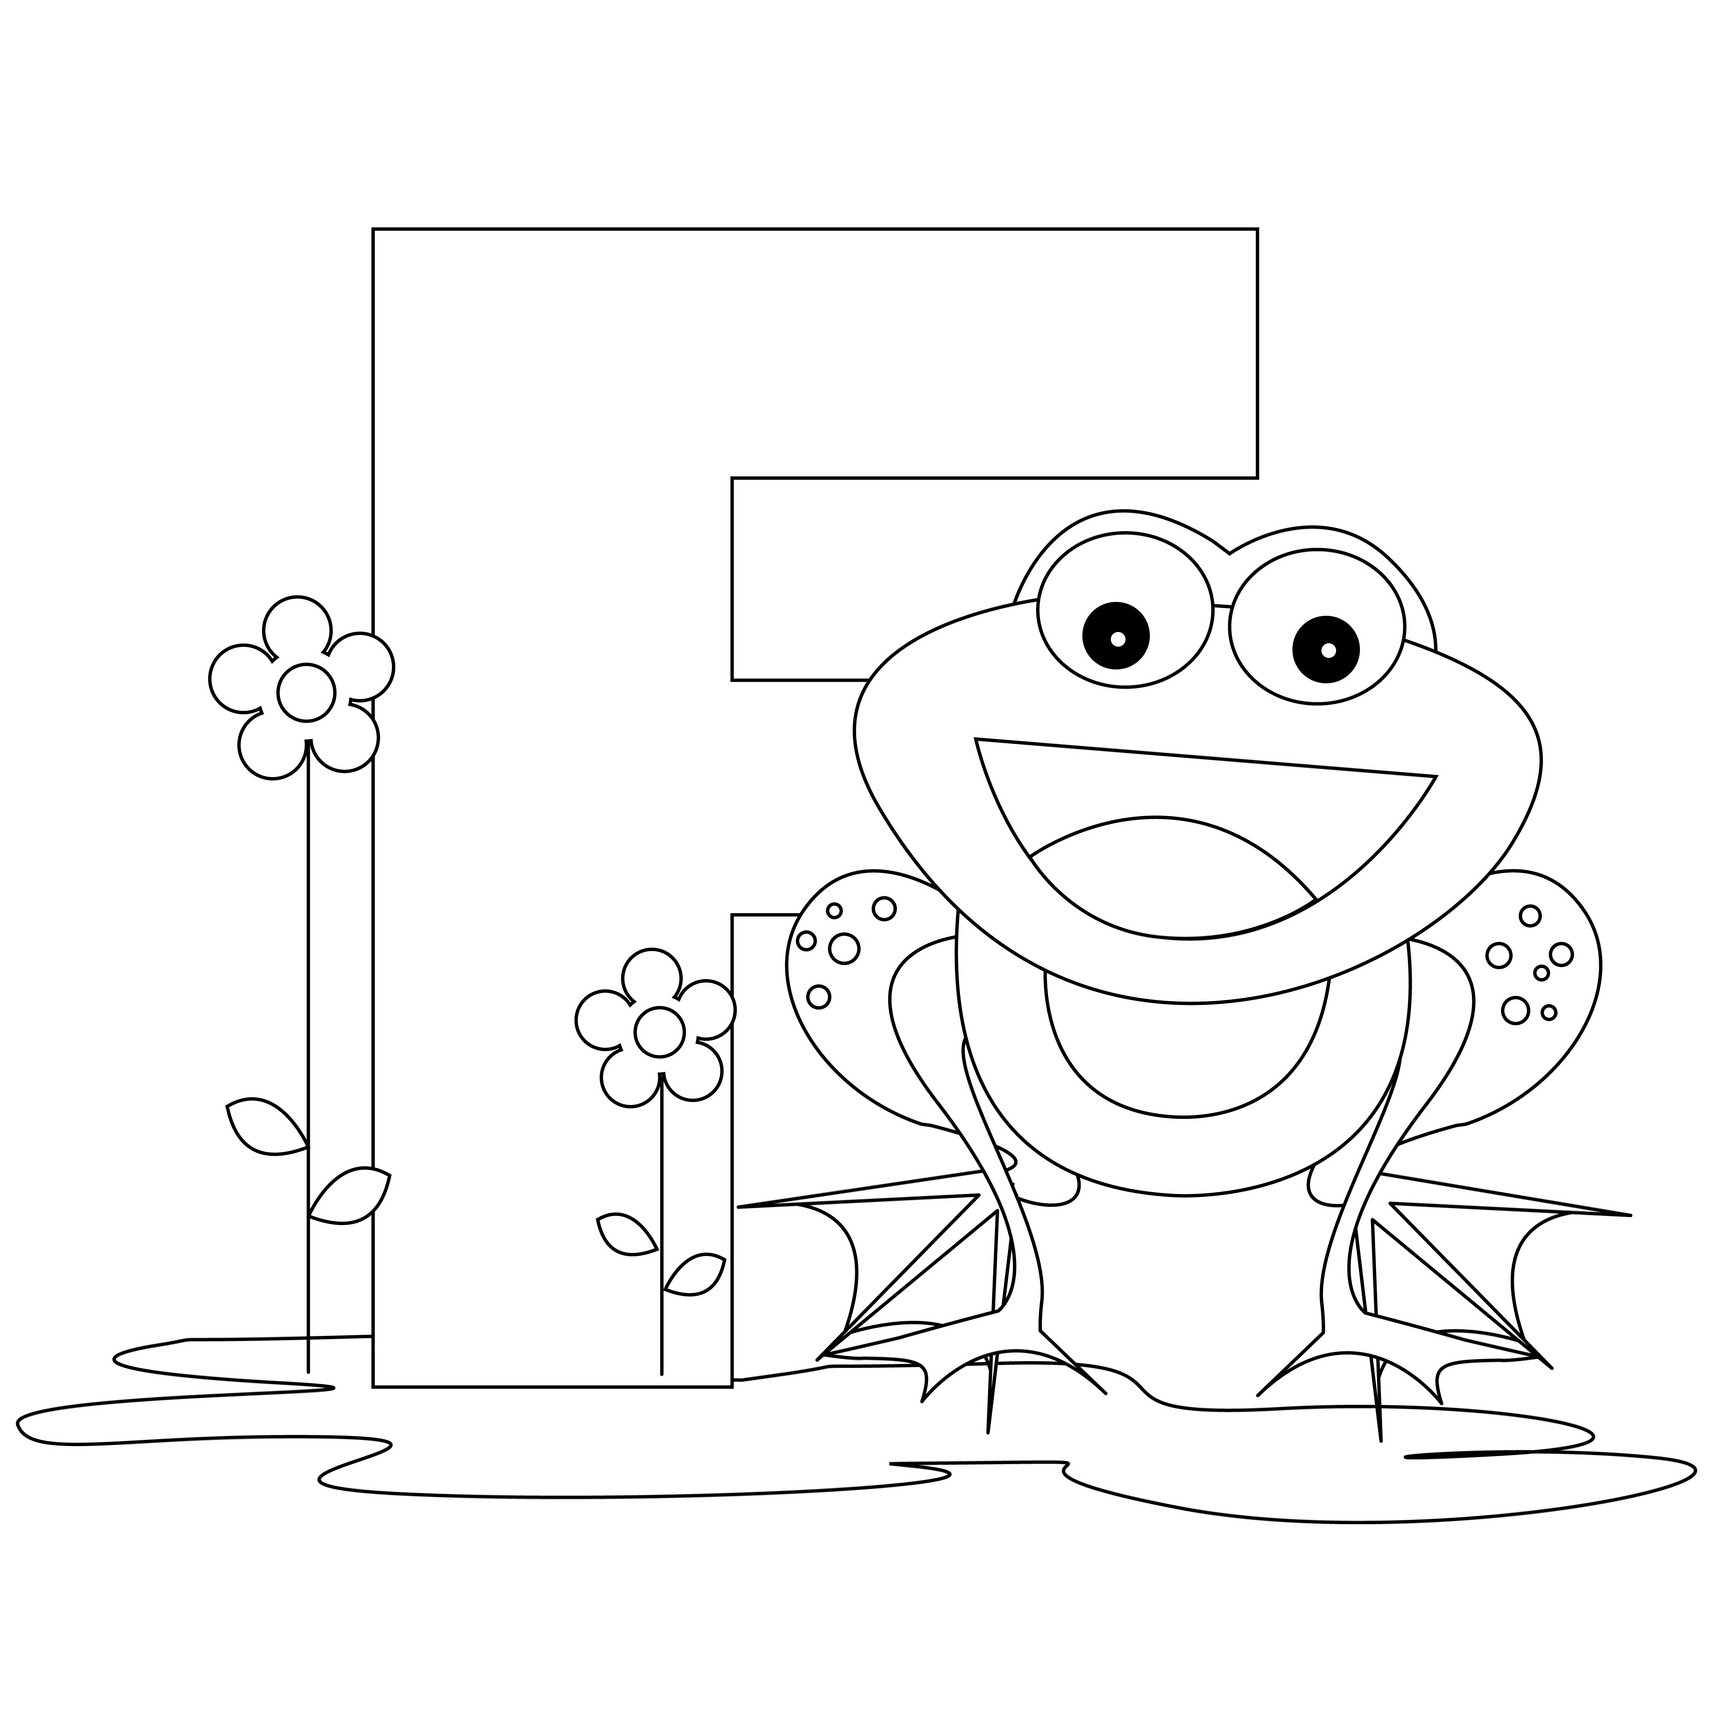 Coloring Pages : Marvelous Alphabetters Coloring Pages Preschoolter - Free Printable Alphabet Letters Coloring Pages